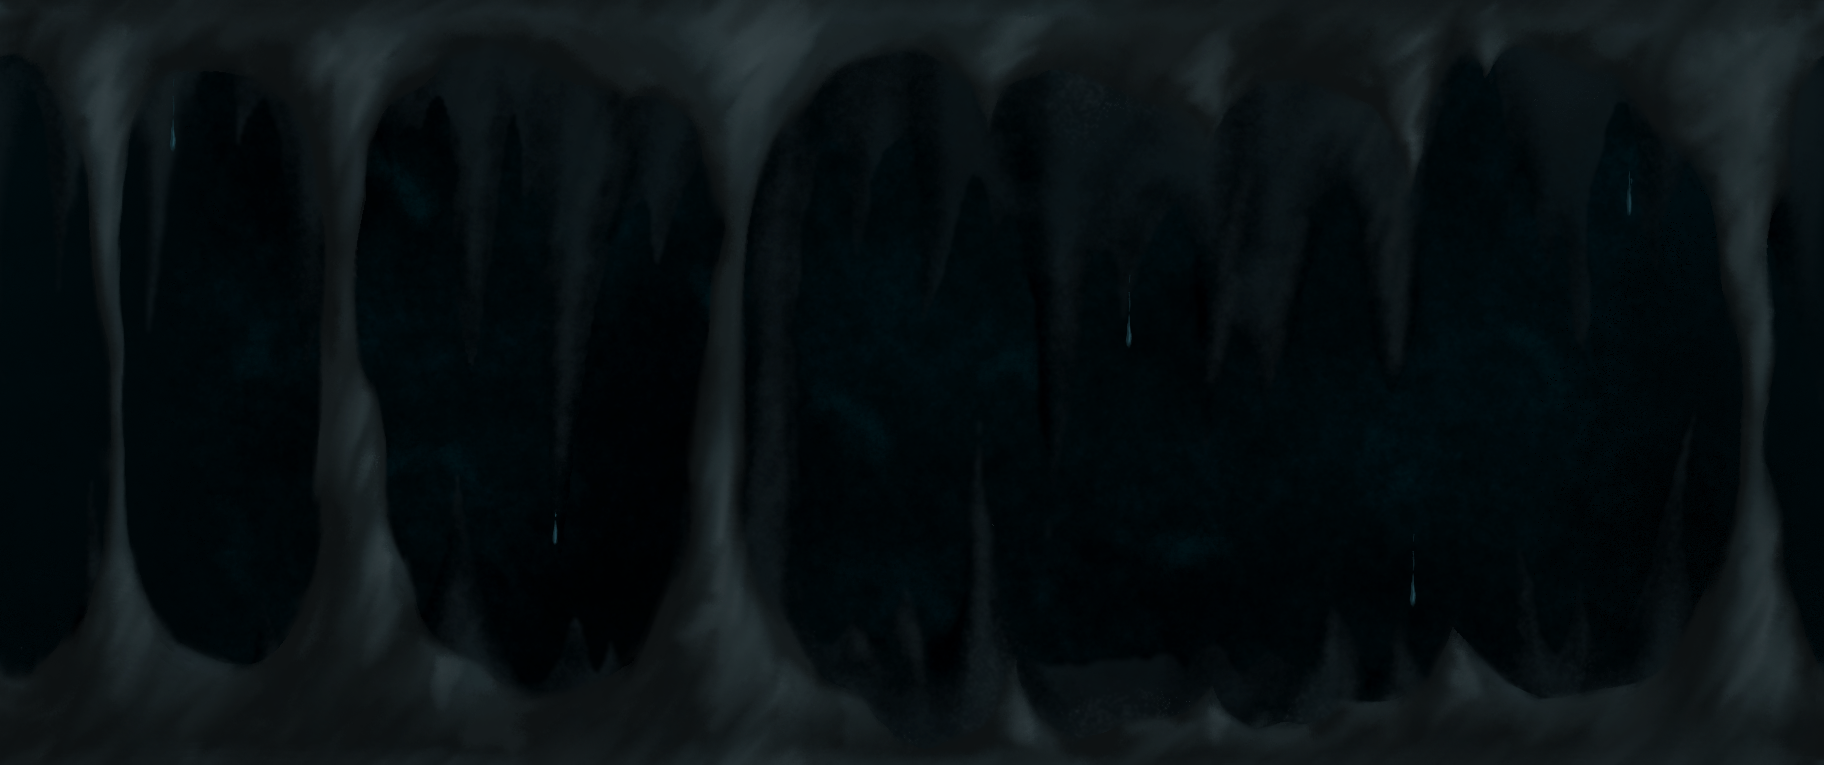 Darkcave-preview.png